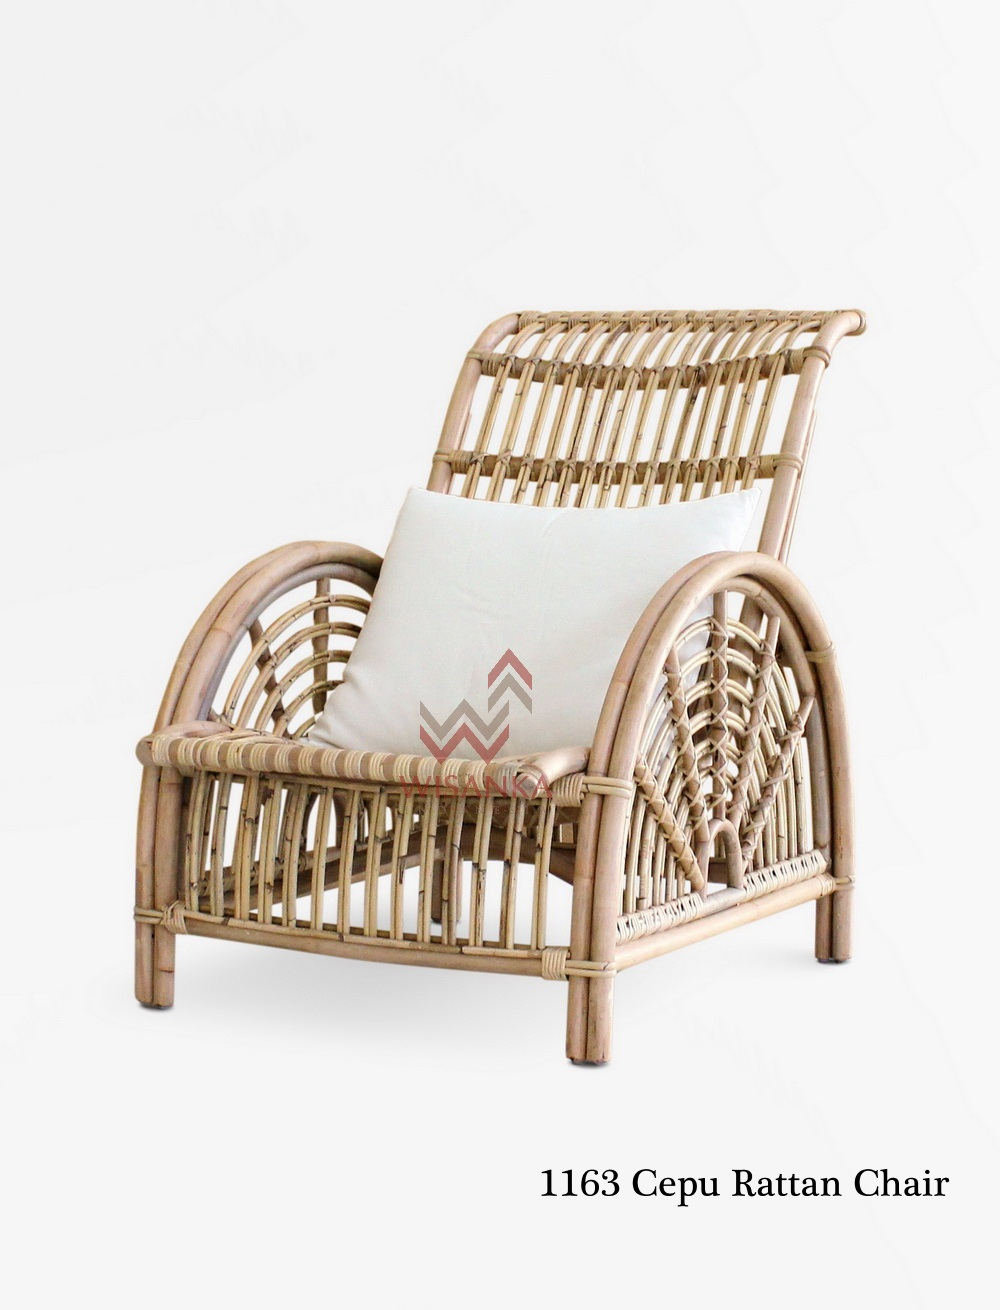 Cepu Rattan Chair